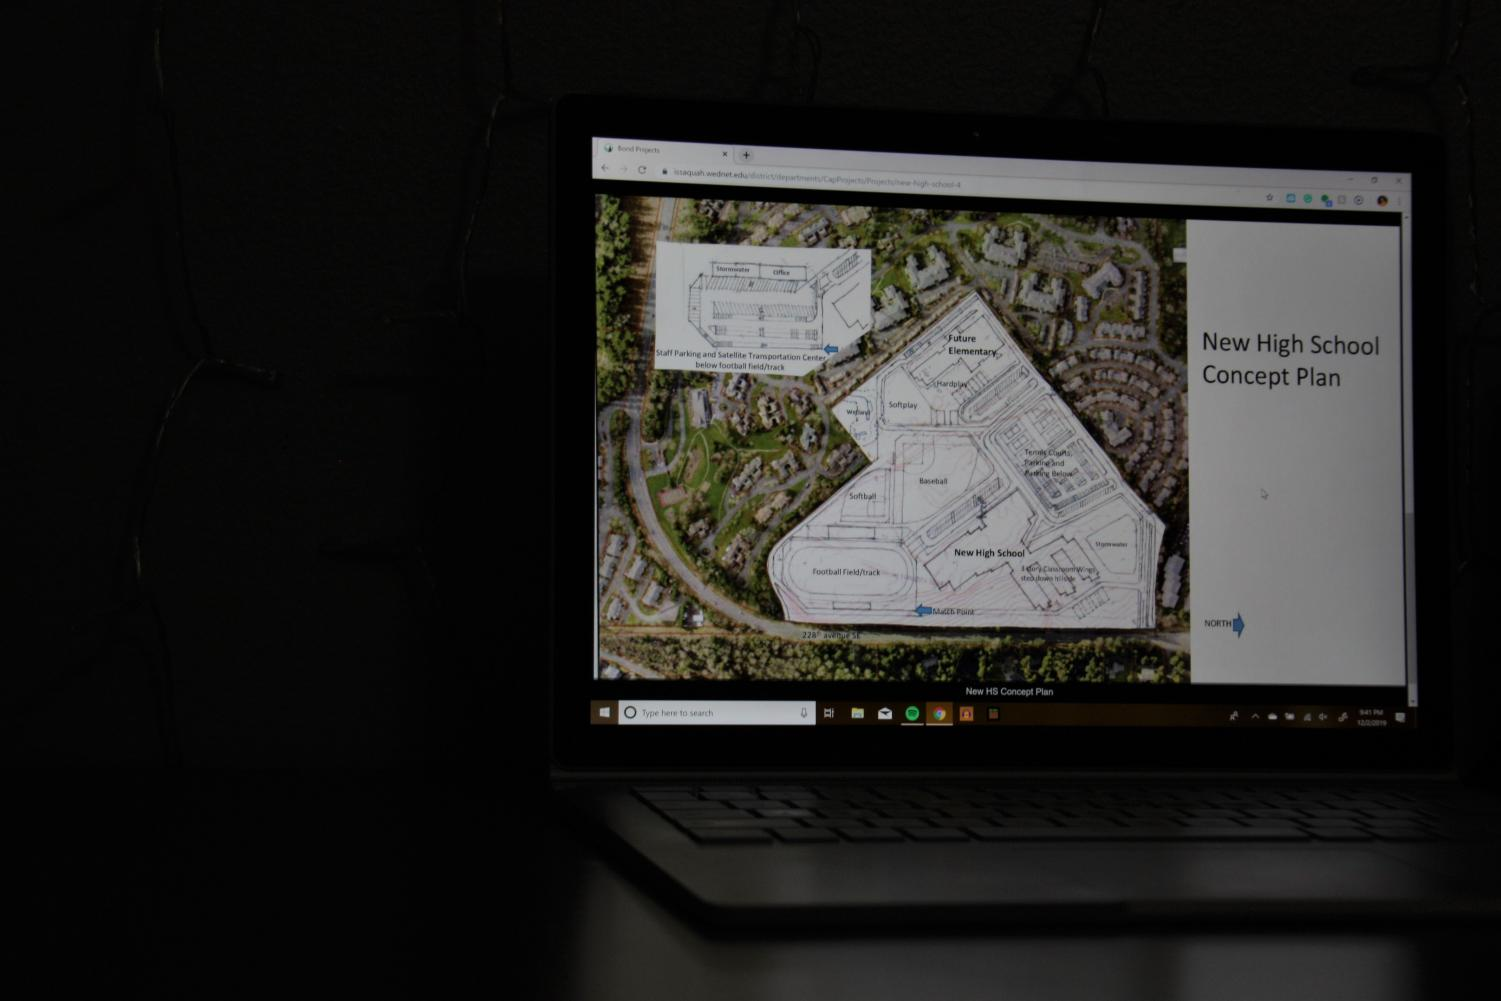 PLANS FOR A NEW HIGH SCHOOL: Here we can see the plans for the new high school, supposed to be finished in September of 2022. The lot will be squished right next to the retirement area of Providence point. The lot may contain a high school, elementary school, parking lot, track, baseball fields, and much more.